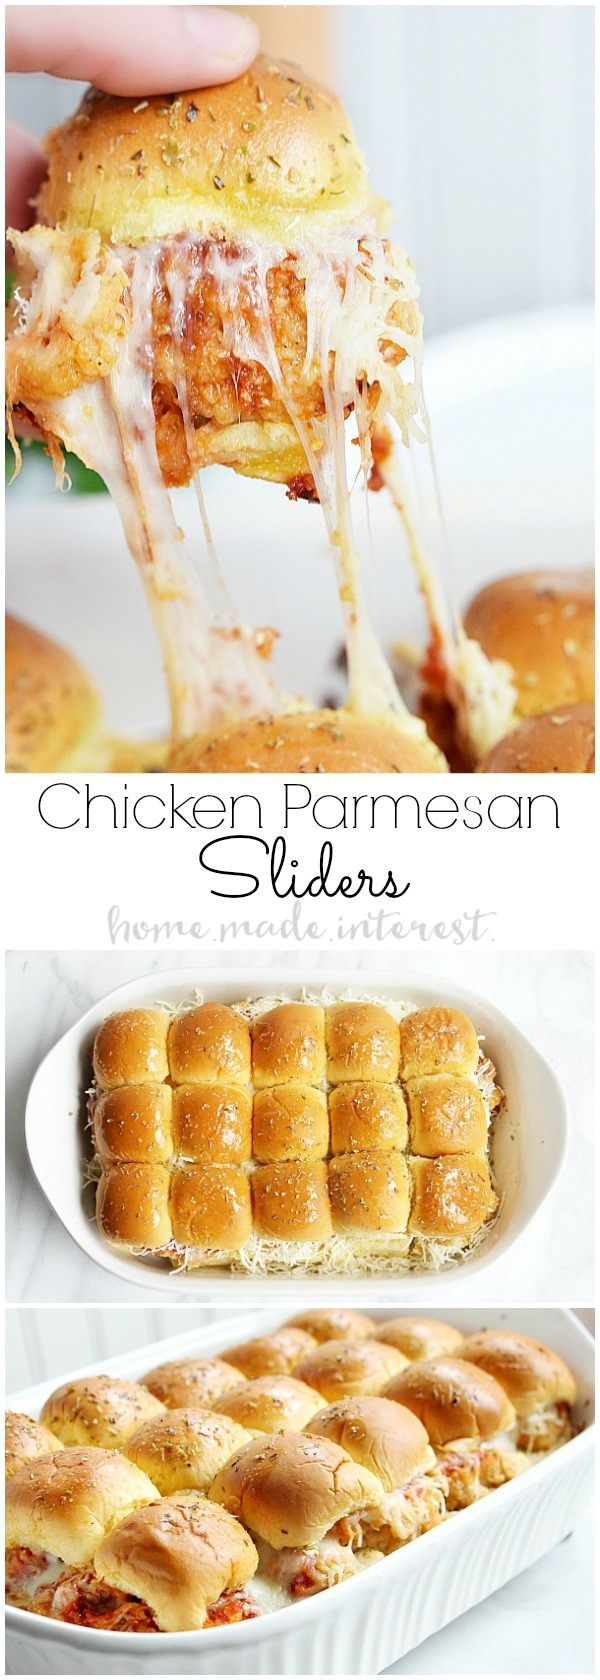 These Chicken Parmesan Sliders are an easy recipe made with fried chicken tenders, tomato sauce, and lots of cheese.